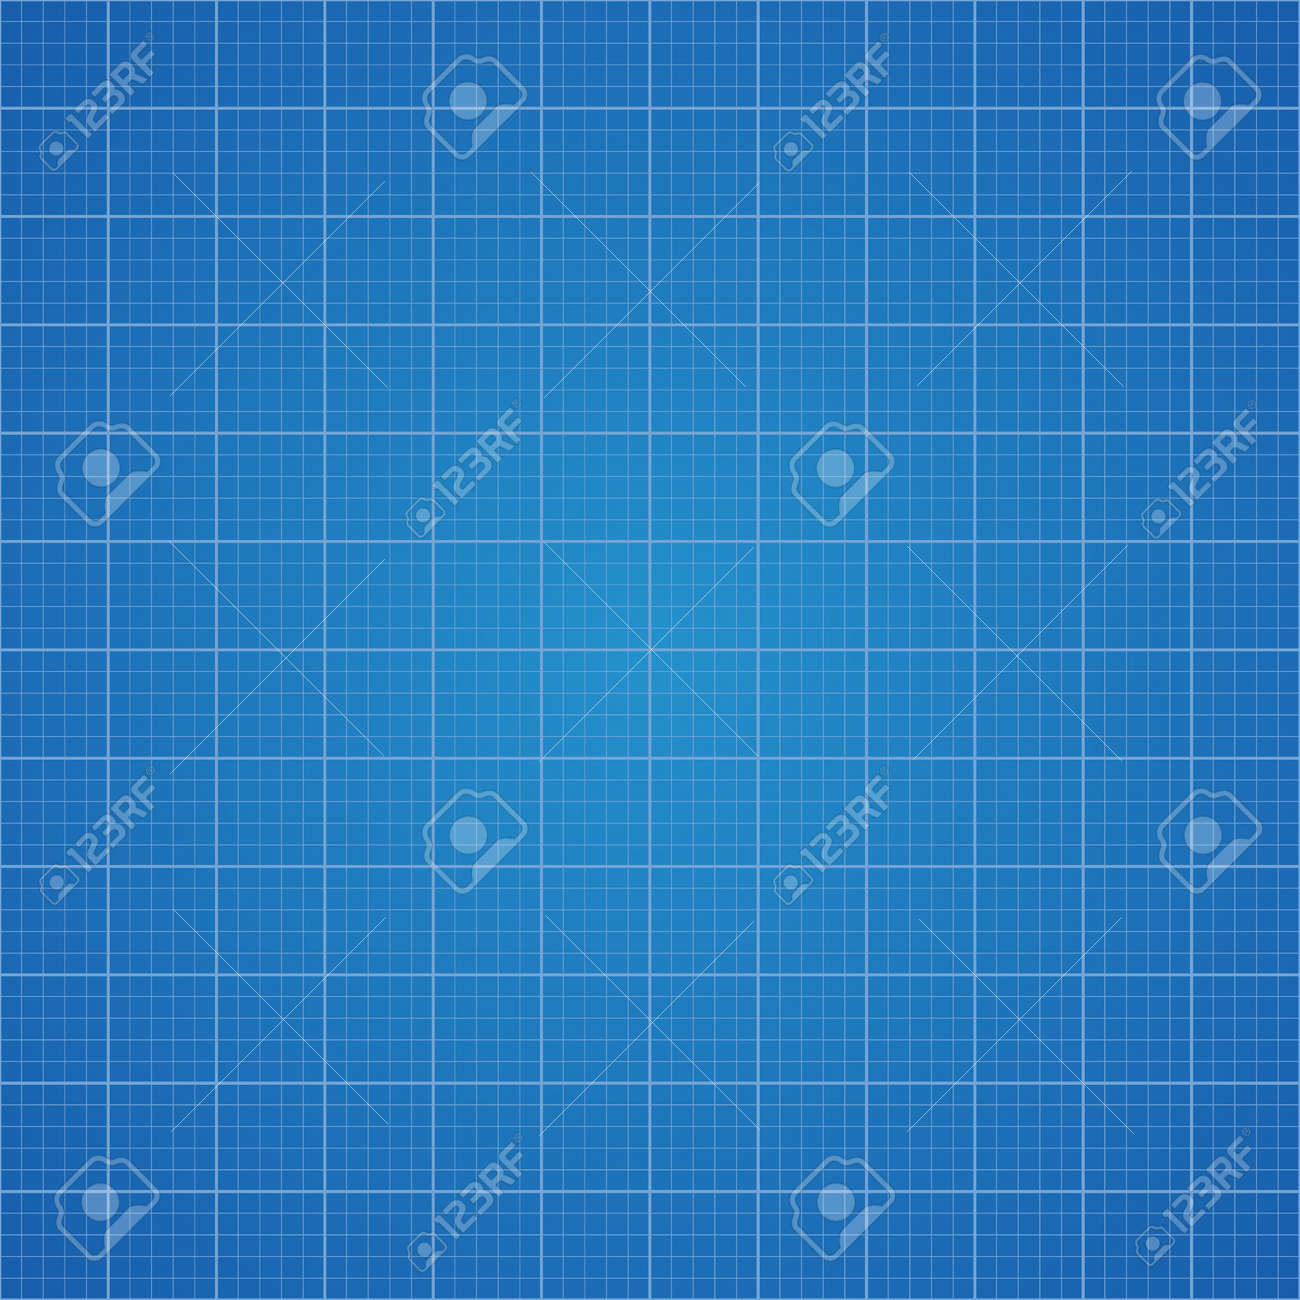 Blueprint grid background graphing paper for engineering in blueprint grid background graphing paper for engineering in vector illustration stock vector 42421069 malvernweather Images